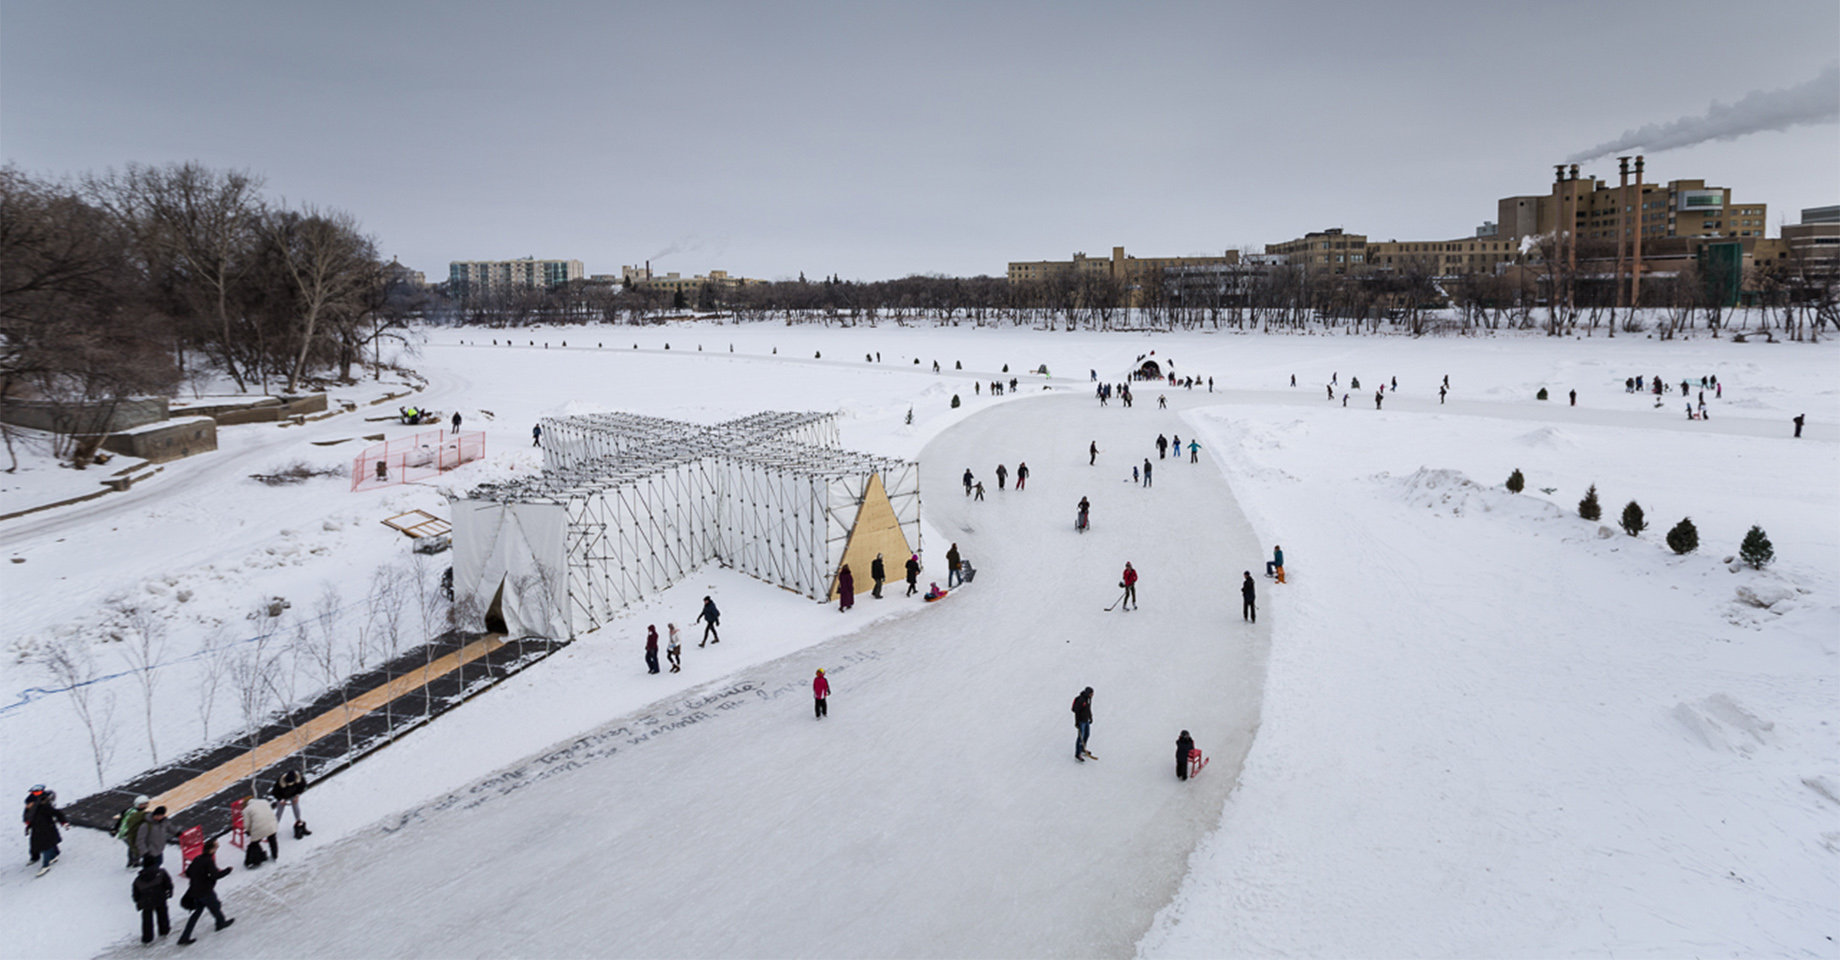 People gathering and playing on a frozen river